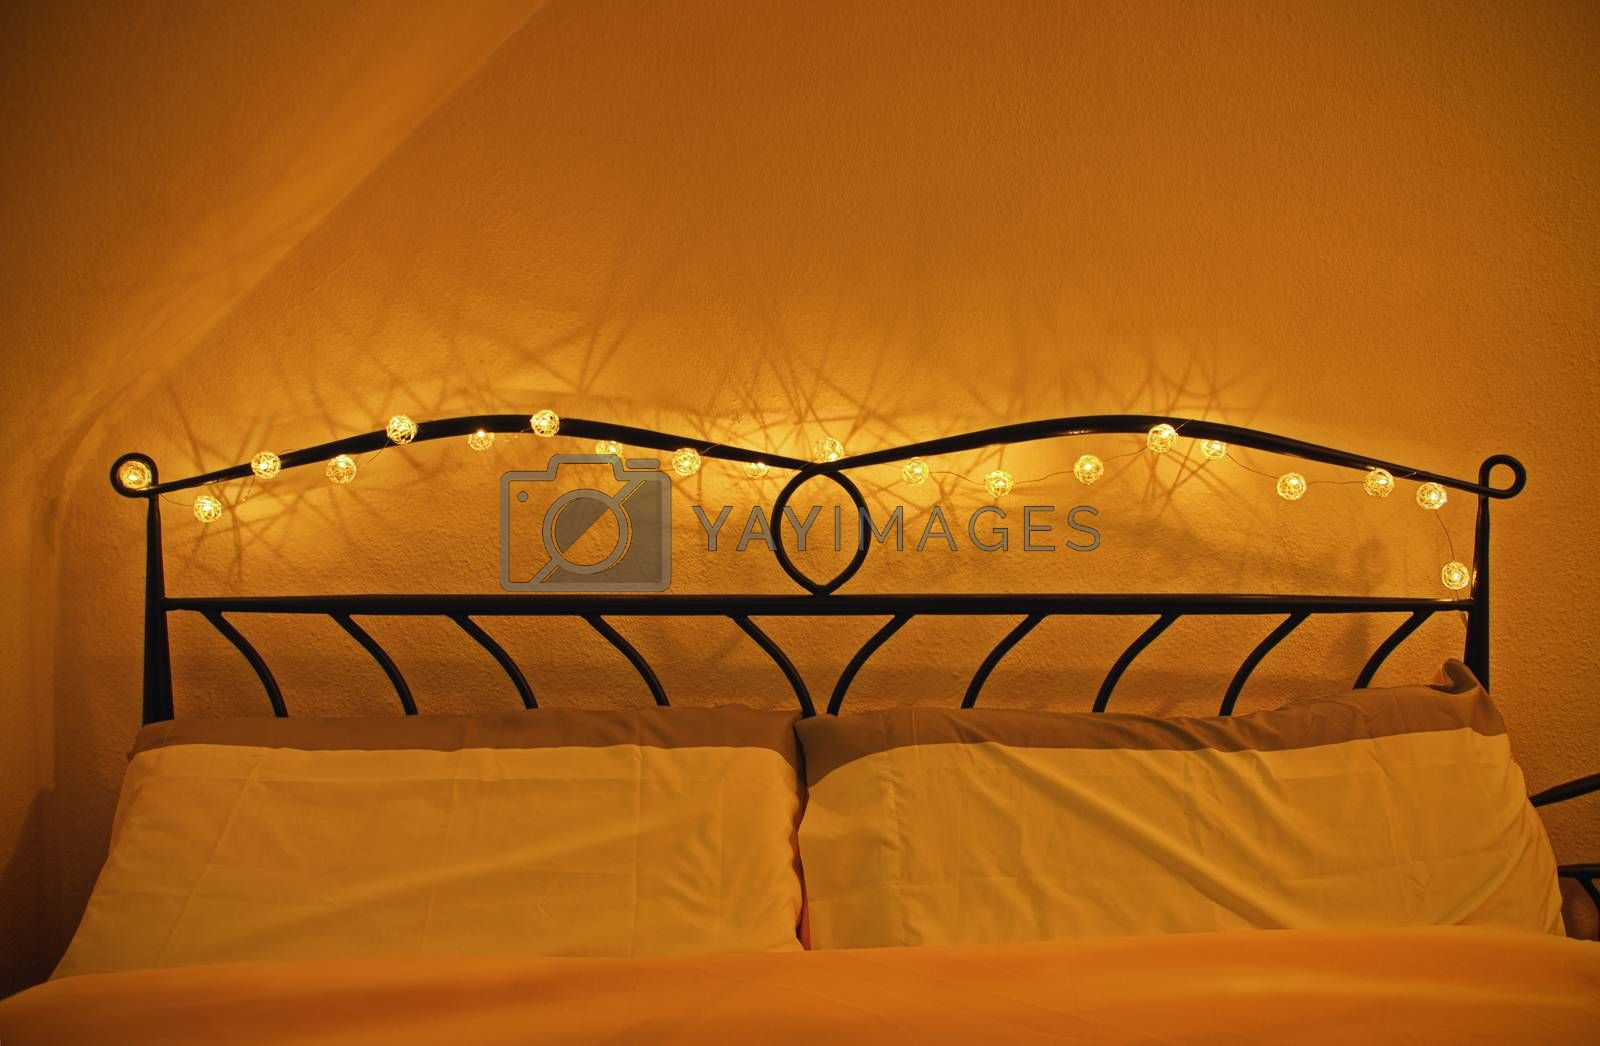 Coziness, comfort, interior and holidays concept. Bedroom interior with comfortable bed and pillows, garland of Christmas lights around the wrought iron headboard. Valentine's day date concept.